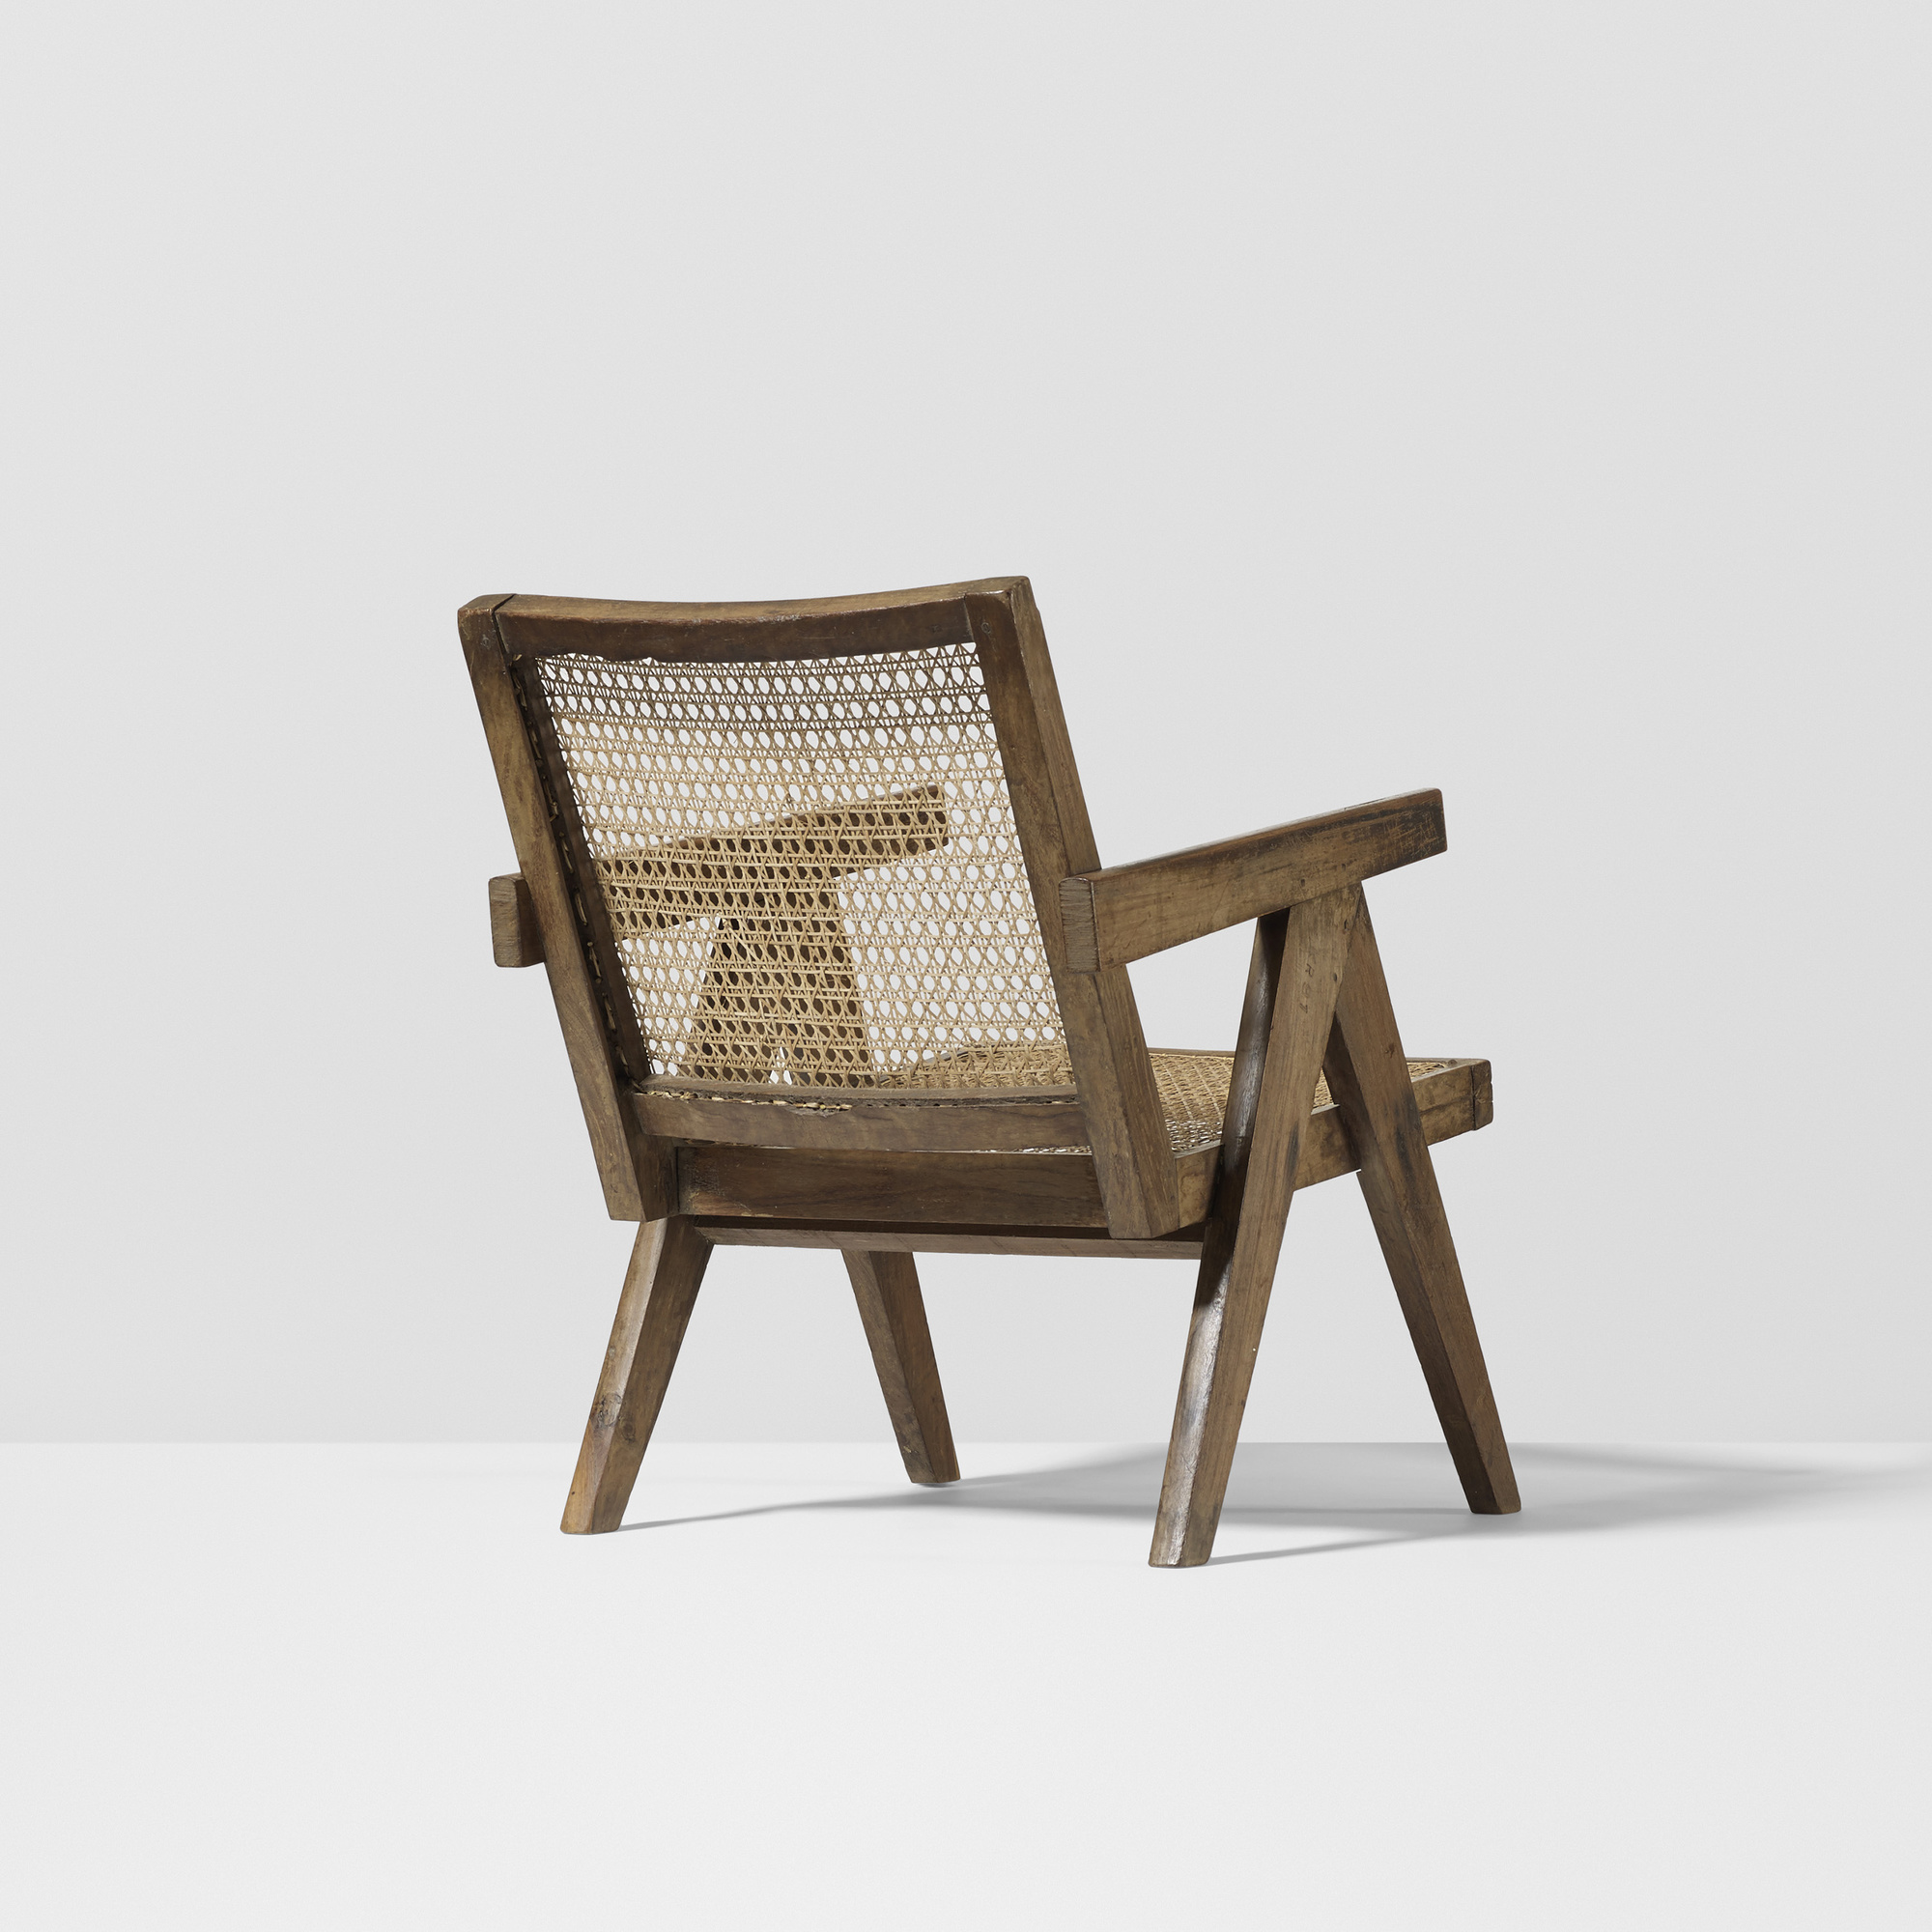 116 Pierre Jeanneret lounge chair from Chandigarh Le